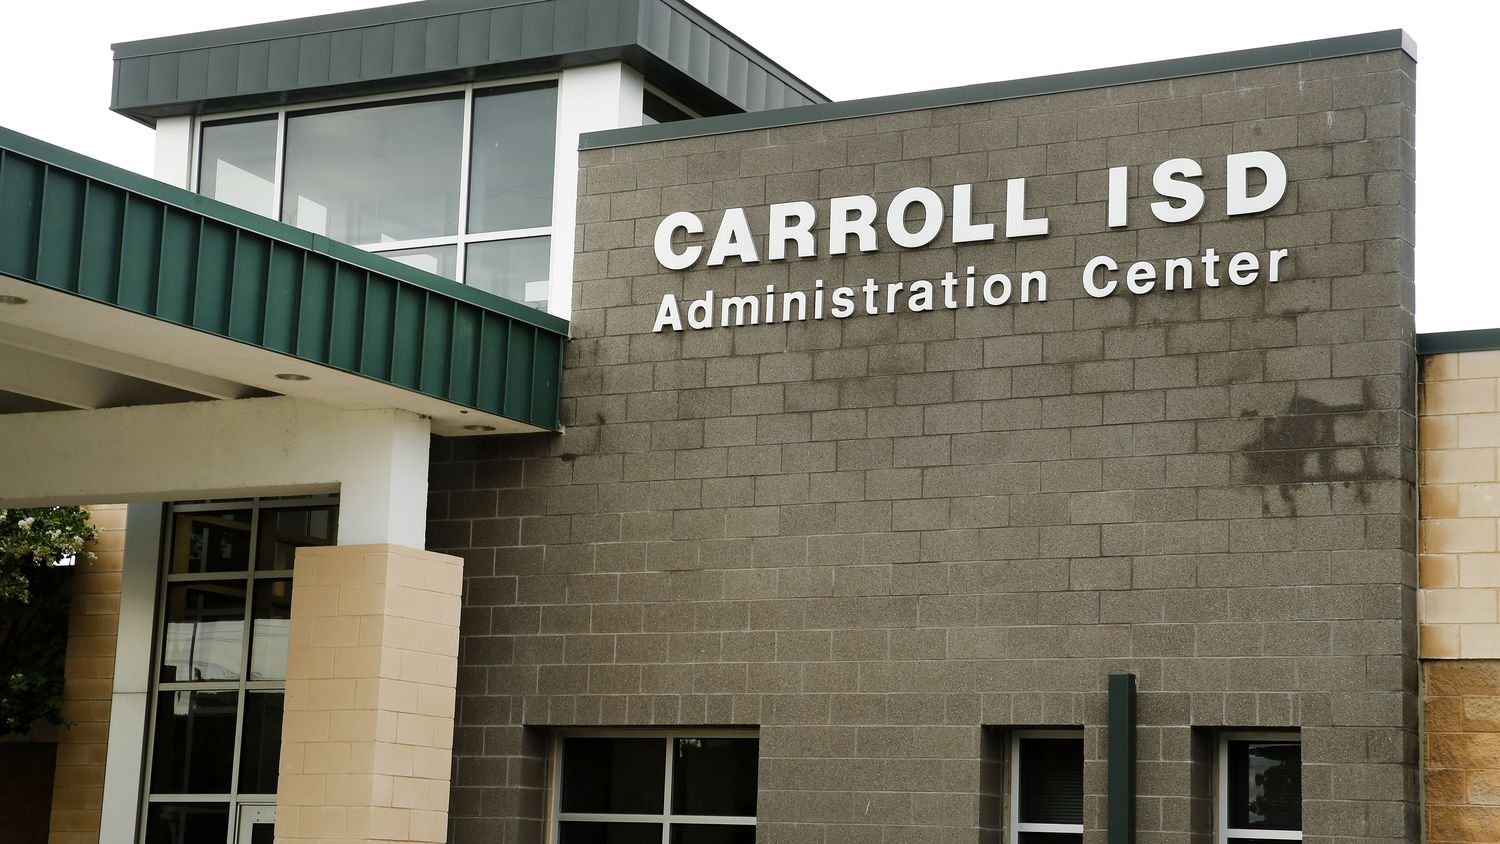 In Carroll ISD, masks are now optional when students and staff are outdoors.